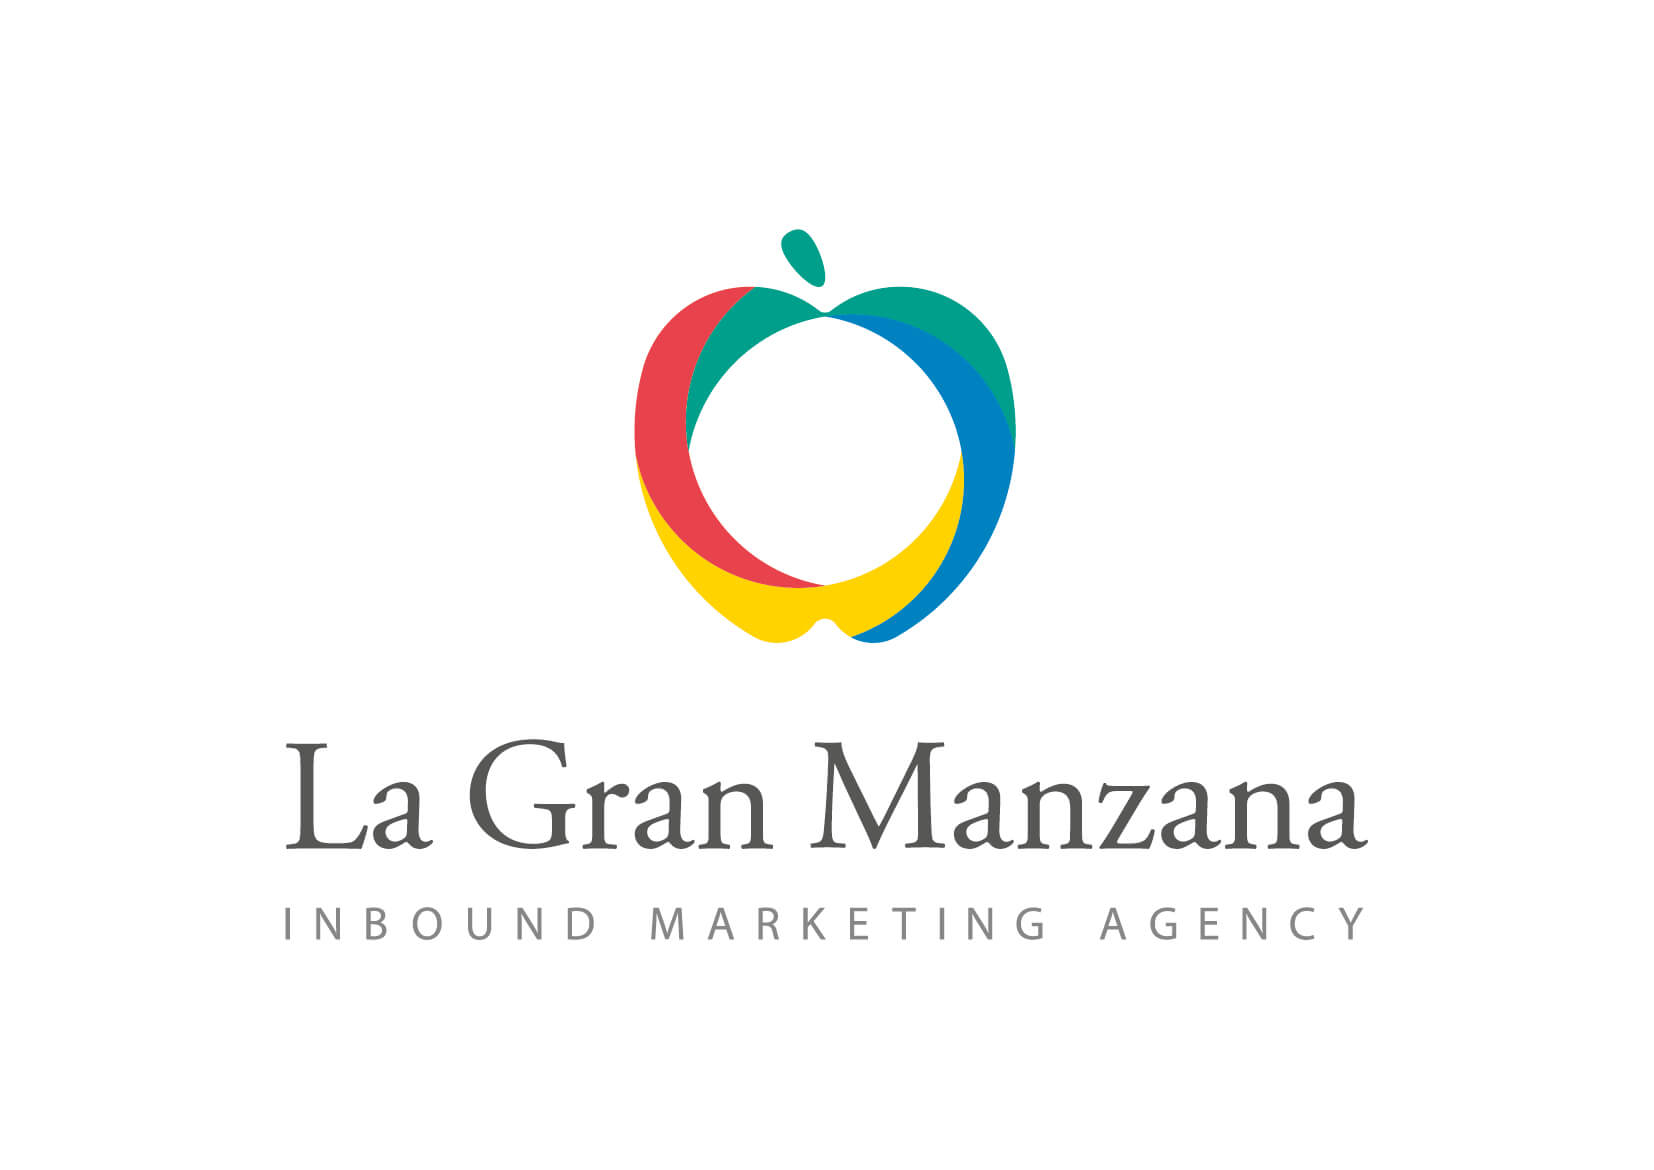 agencia inbound marketing la gran manzana